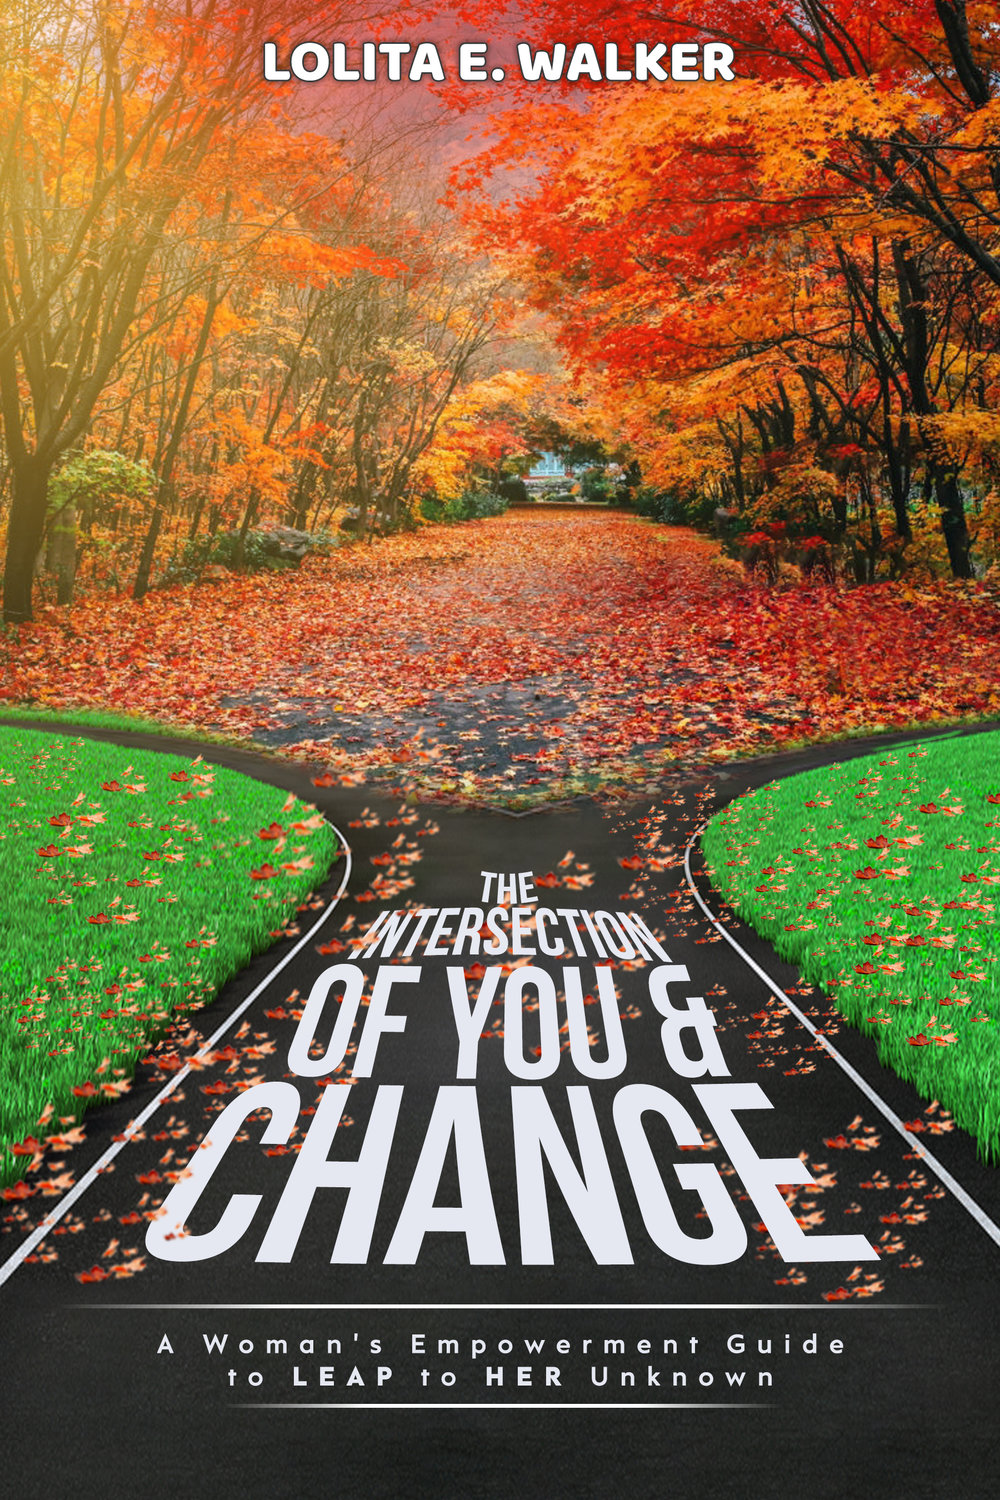 THE INTERSECTION OF YOU AND CHANGE. by Lolita E. Walker